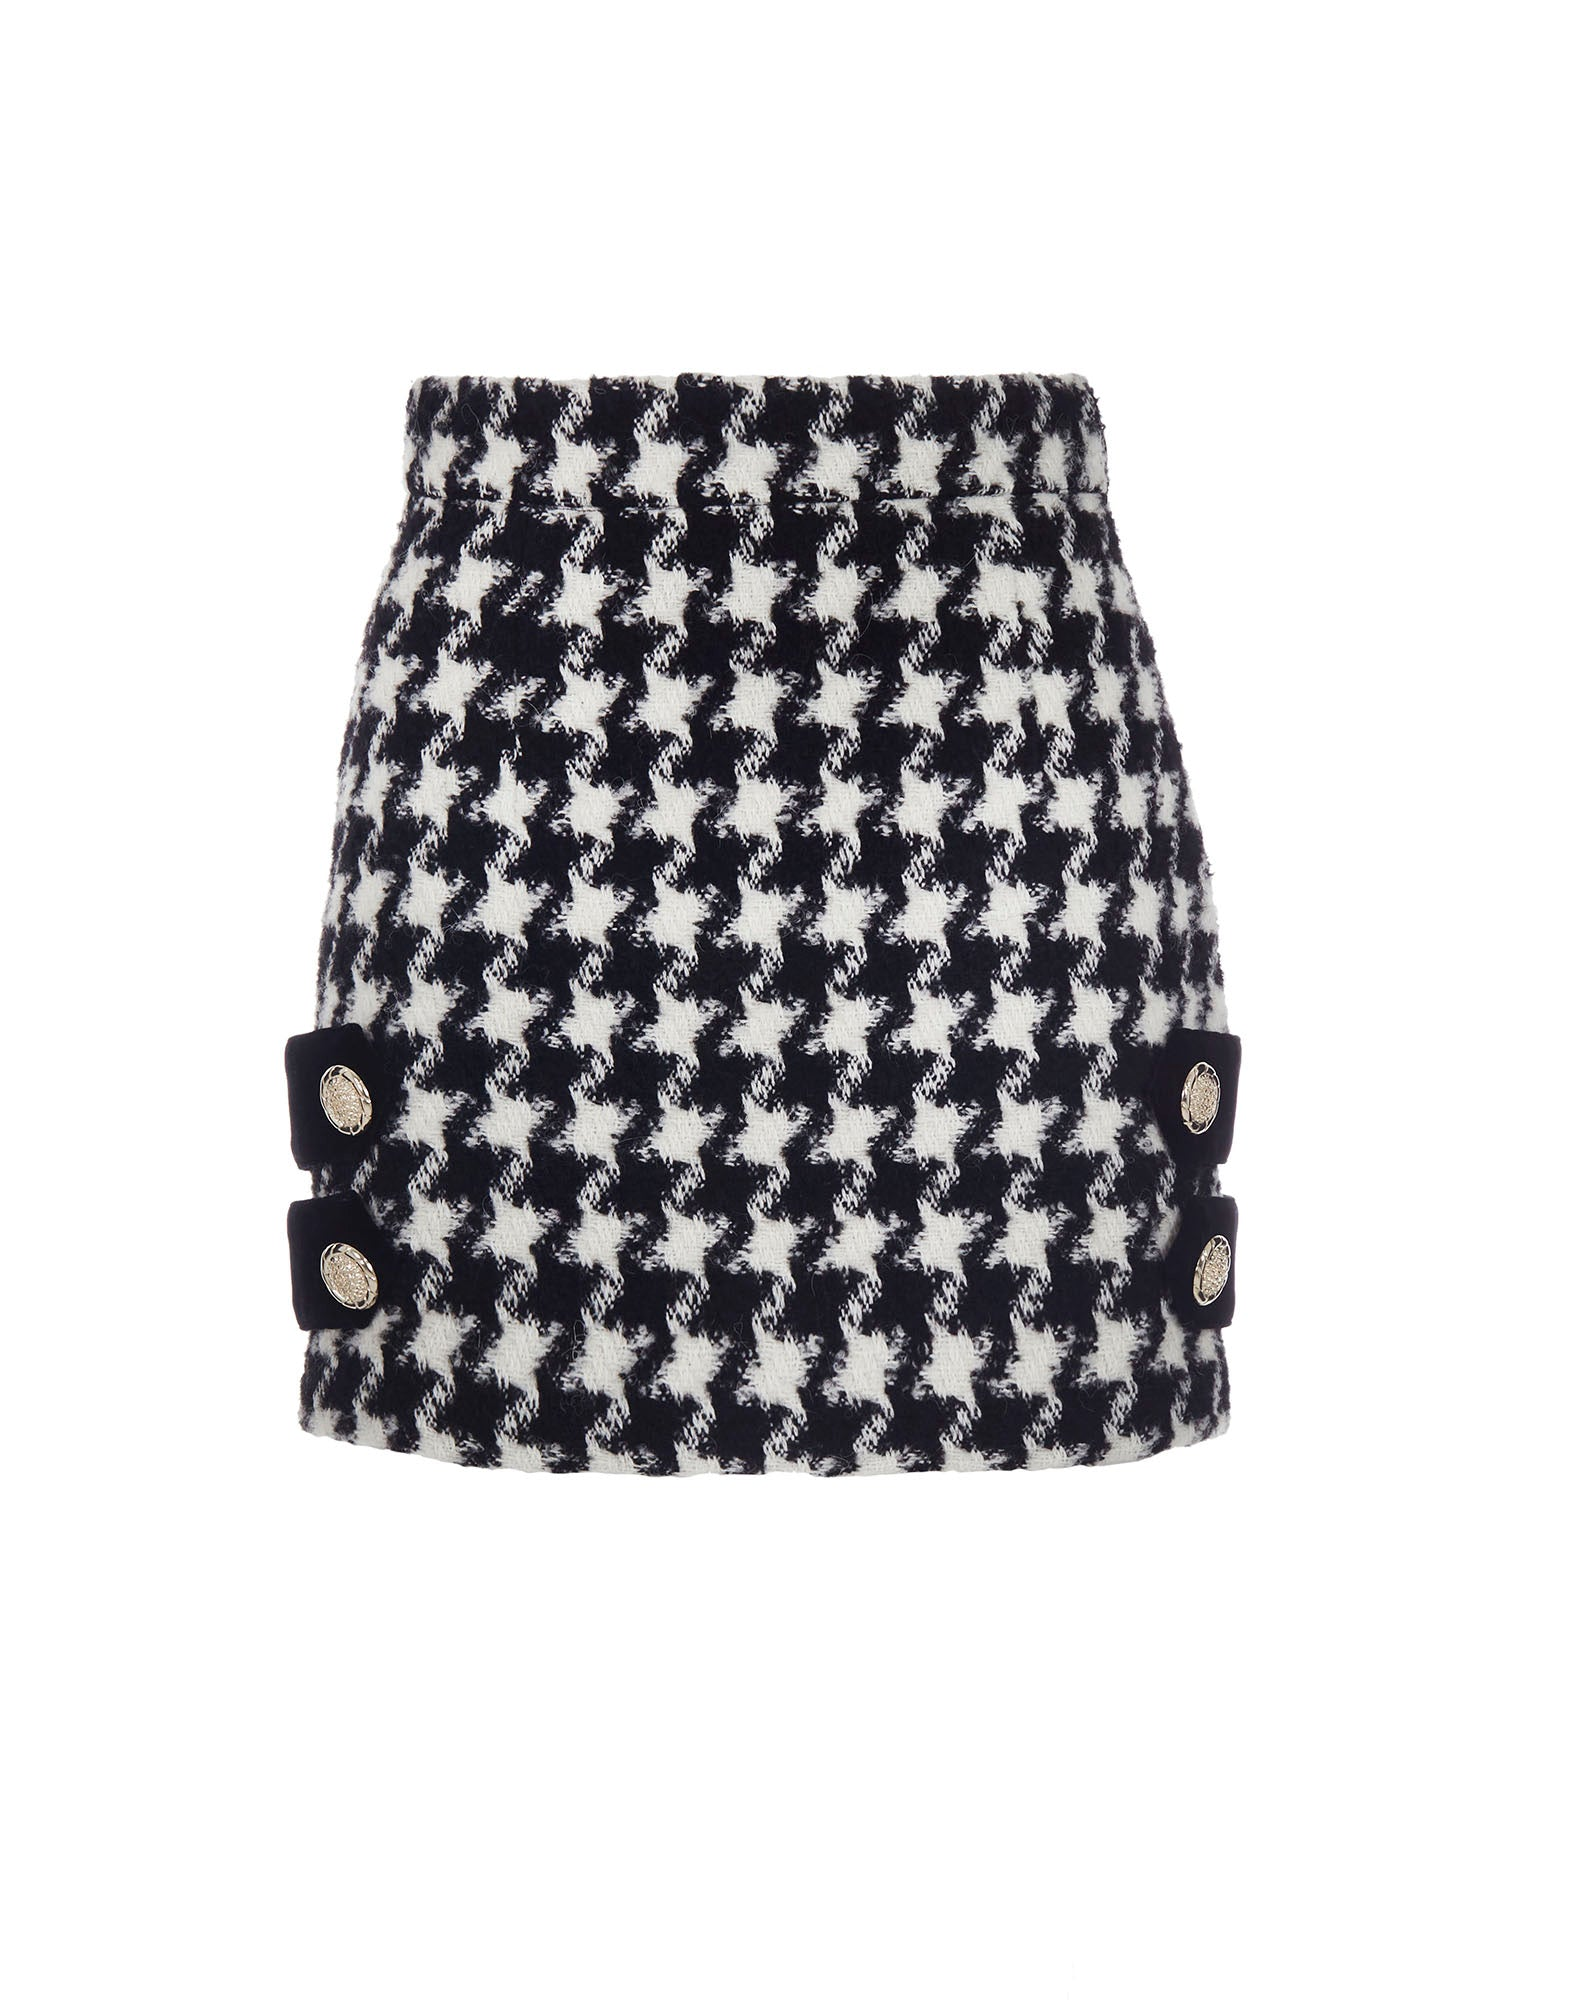 Houndstooth print skirt - NEW IN